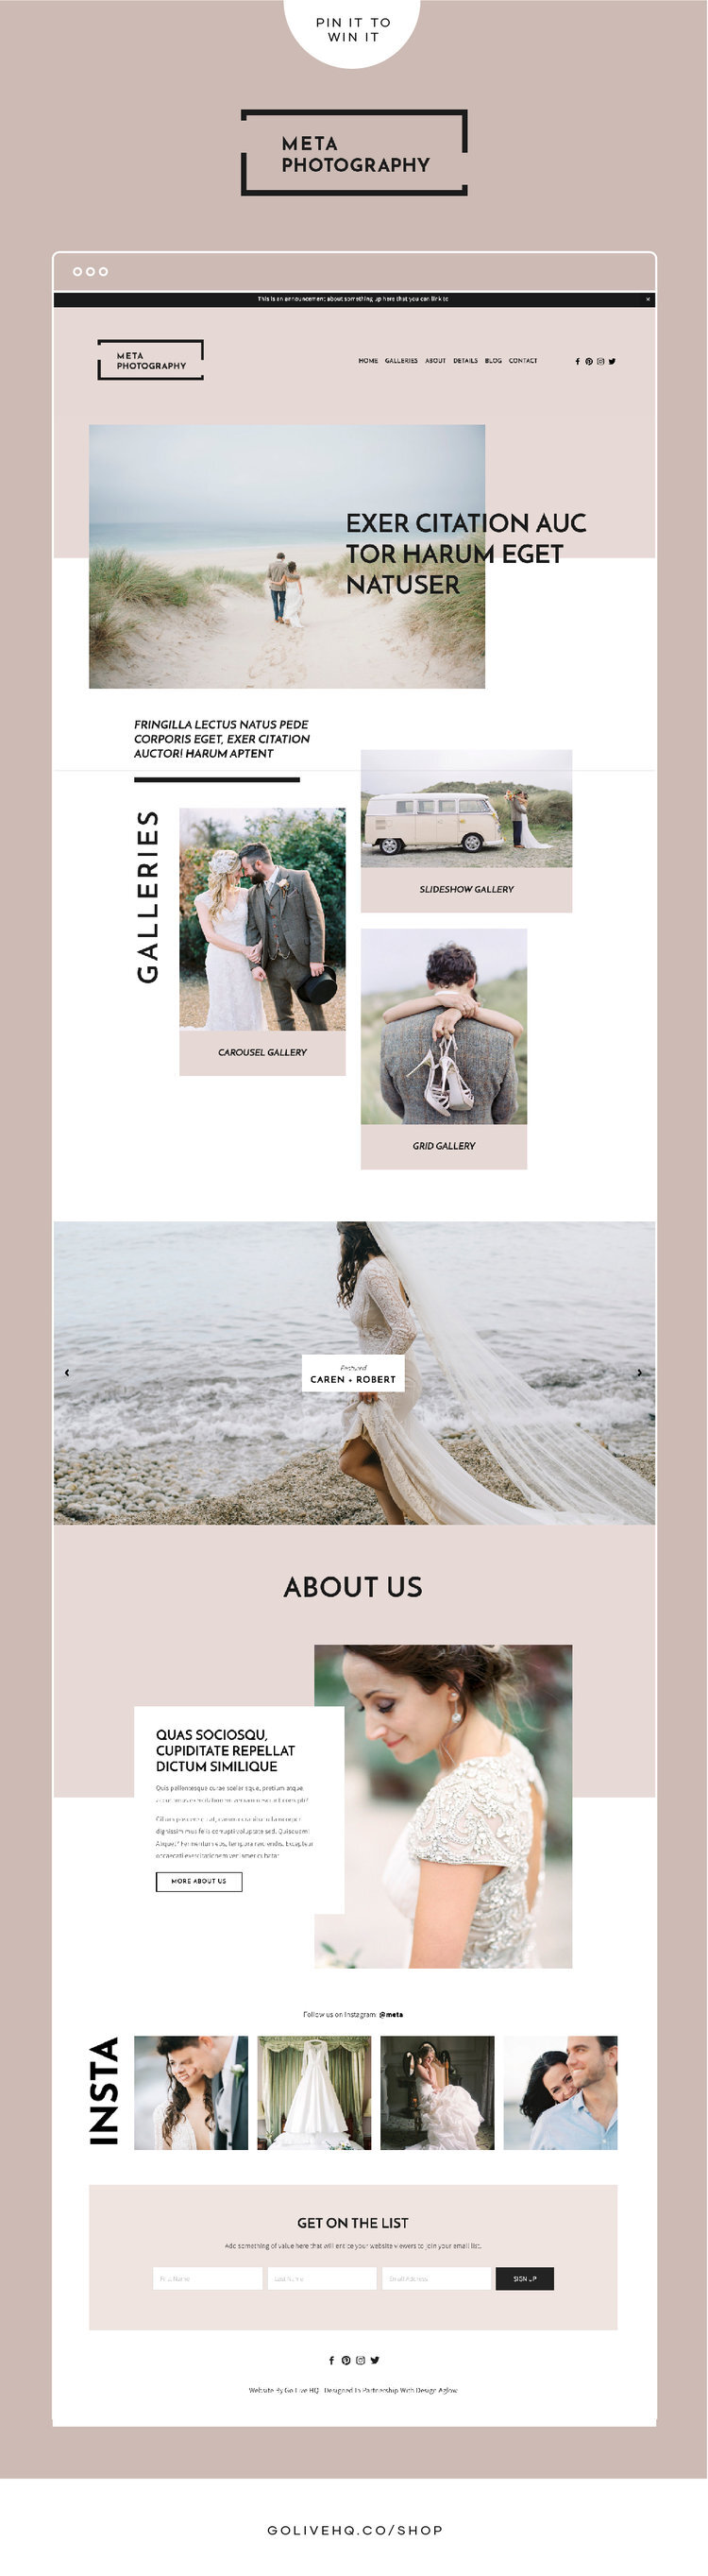 Modern,+Minimal+Photography+Website+Template+Design+For+Squarespace+_+By+Golive.jpg